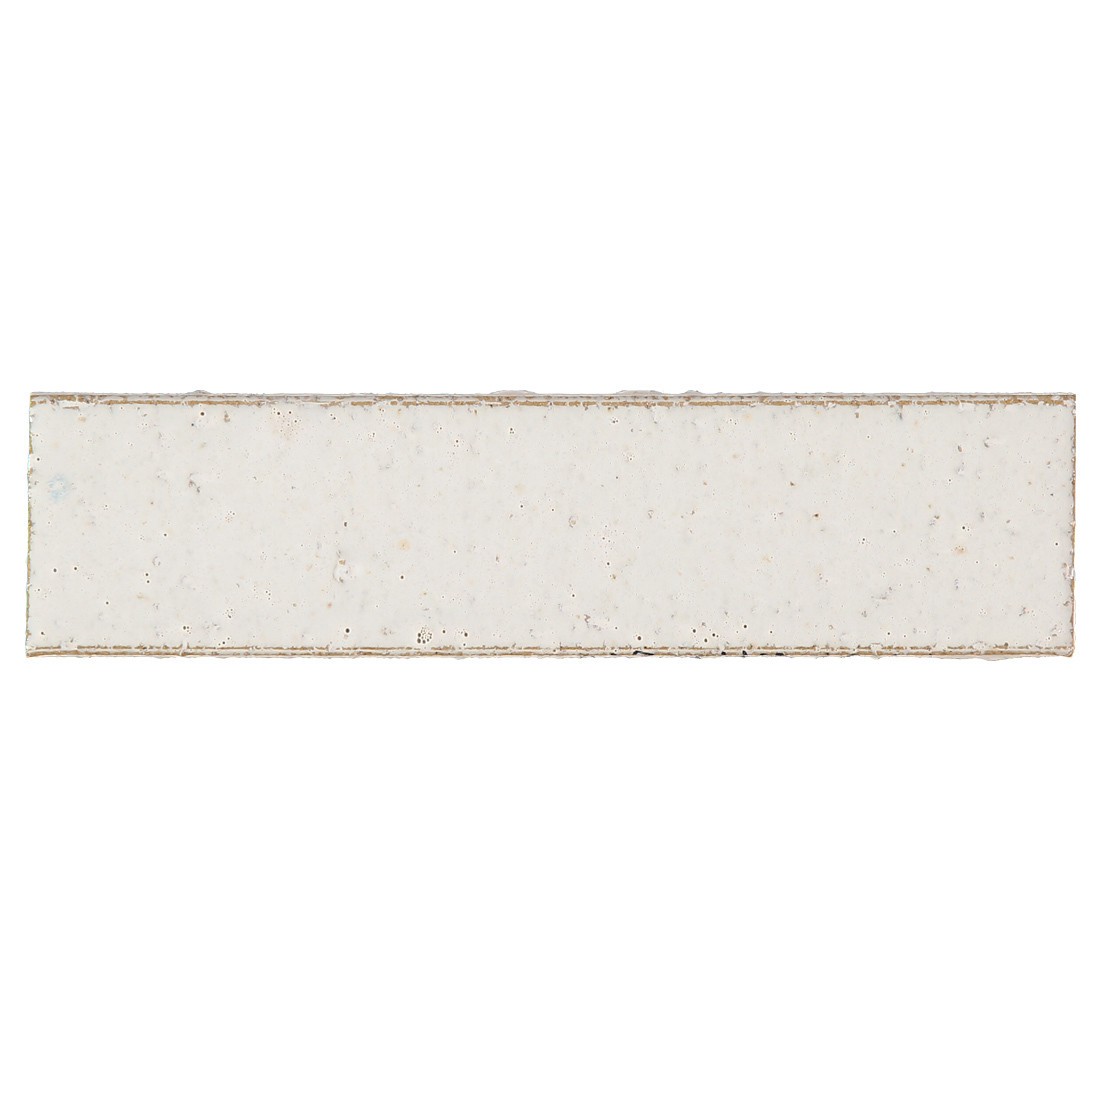 Murano White/Neutral 60 x 240mm